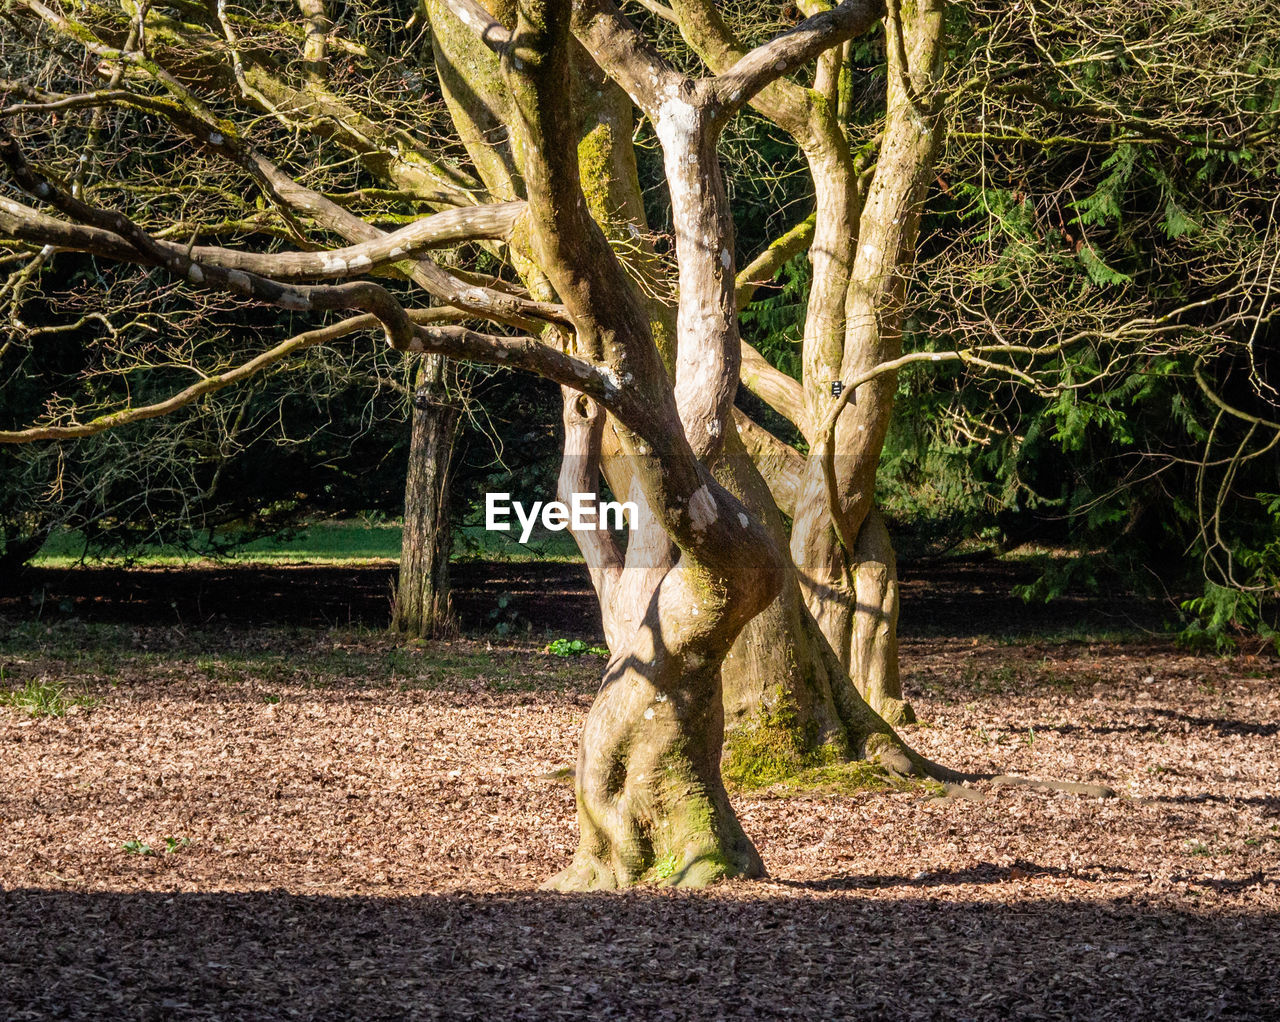 tree, plant, nature, no people, environment, trunk, branch, land, tree trunk, animal themes, mammal, day, animal, outdoors, one animal, forest, landscape, sunlight, full length, growth